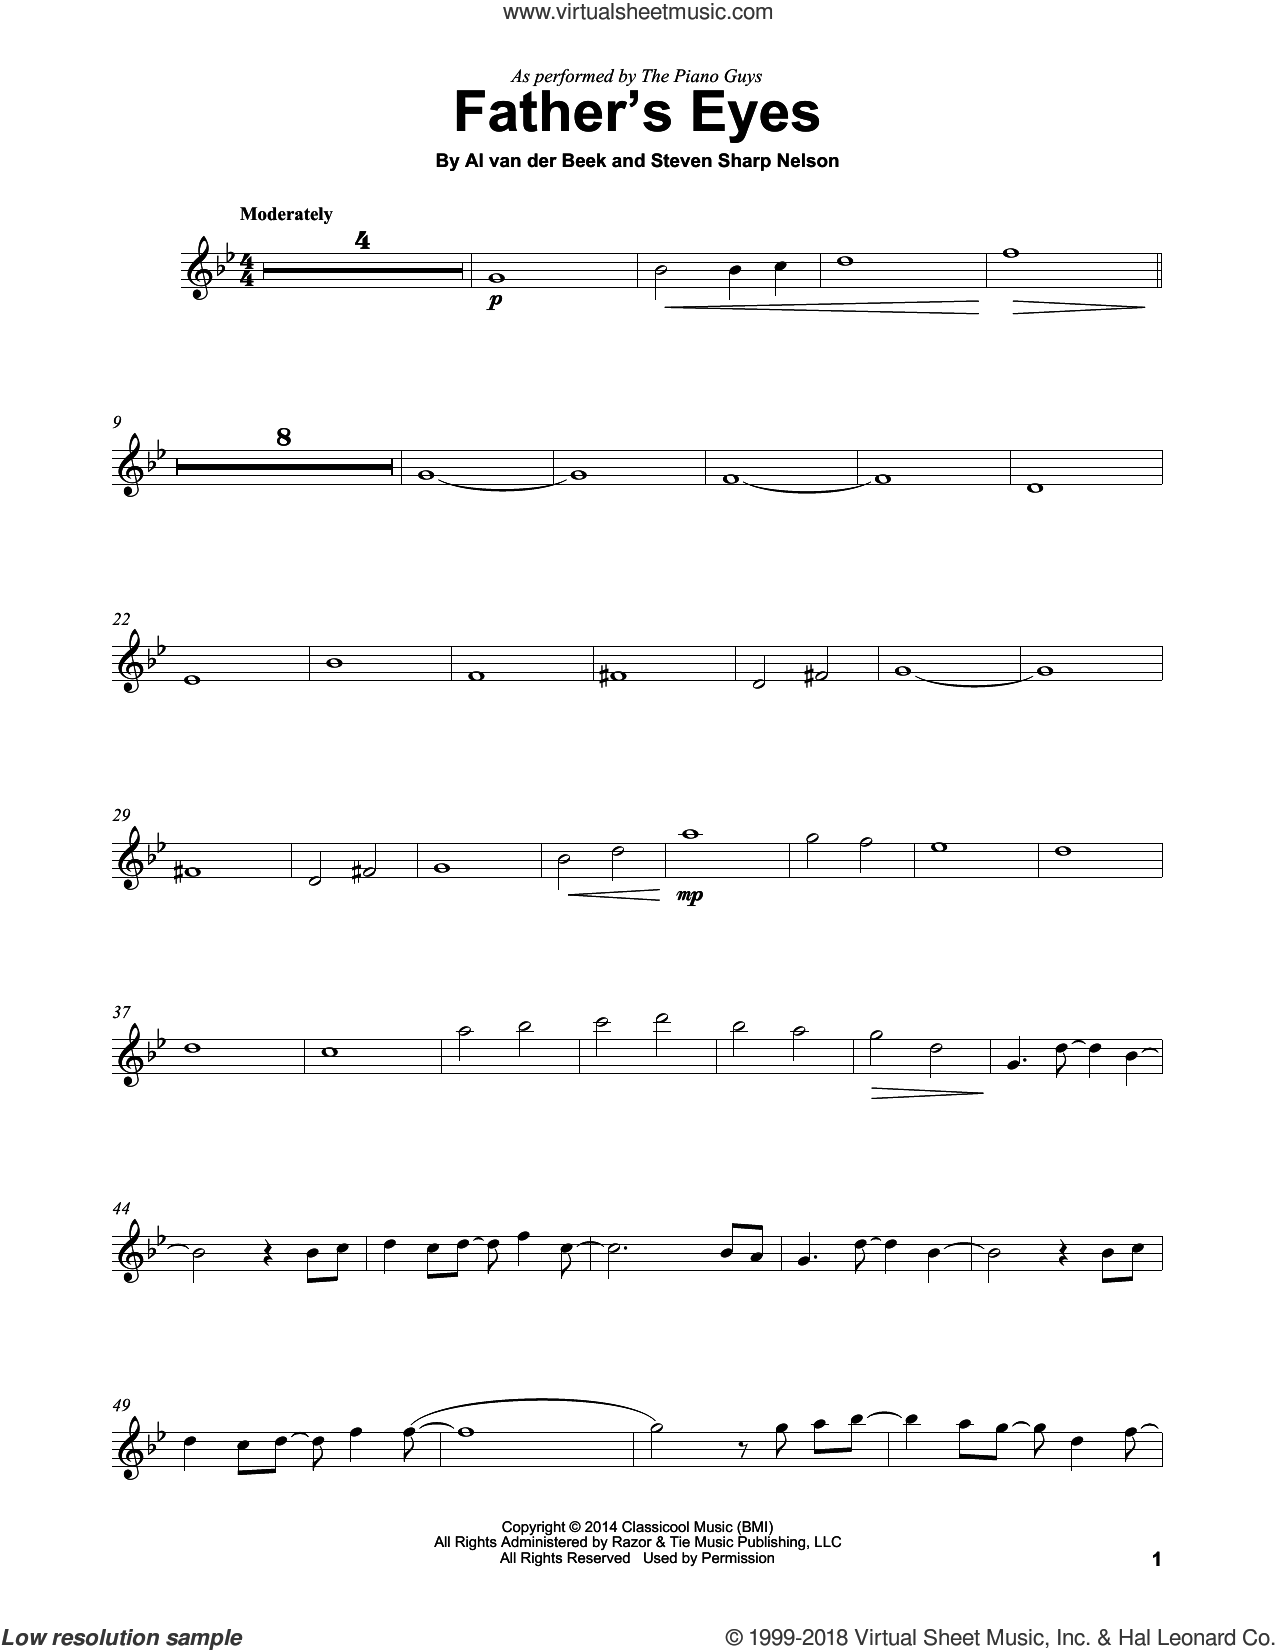 Father's Eyes sheet music for violin solo by The Piano Guys, Al van der Beek and Steven Sharp Nelson, intermediate skill level